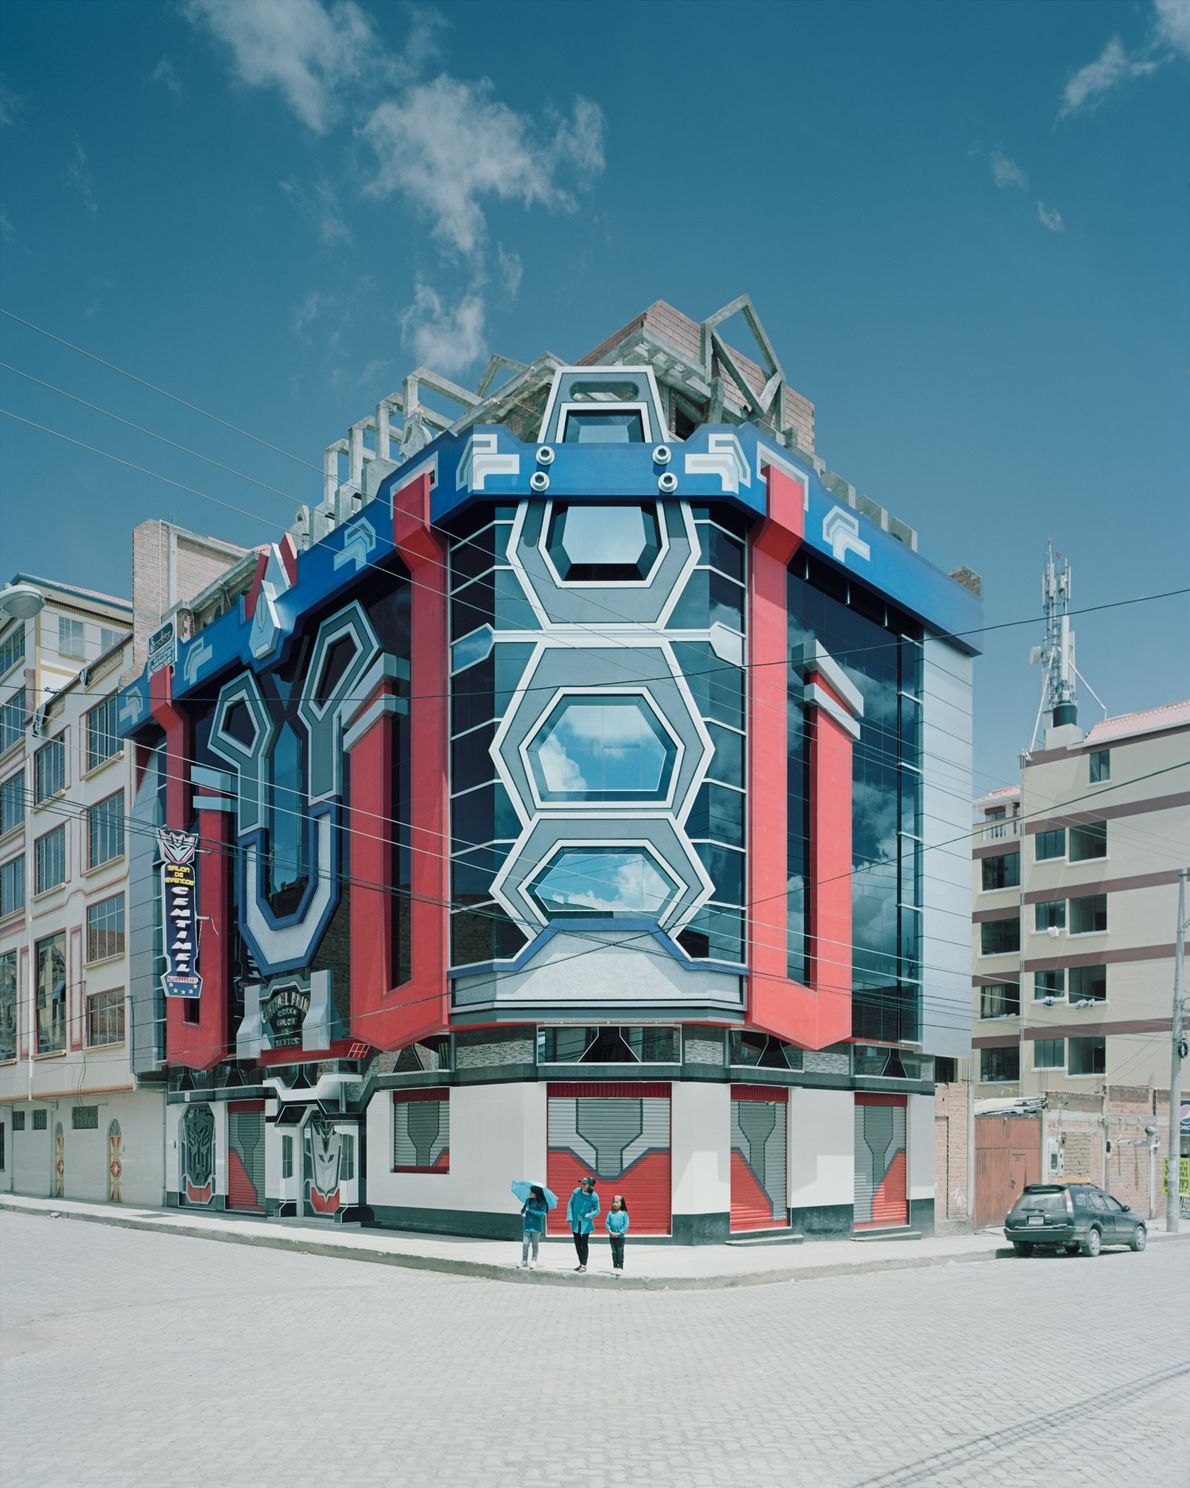 Mamani's futuristic designs have inspired the works of other architects.